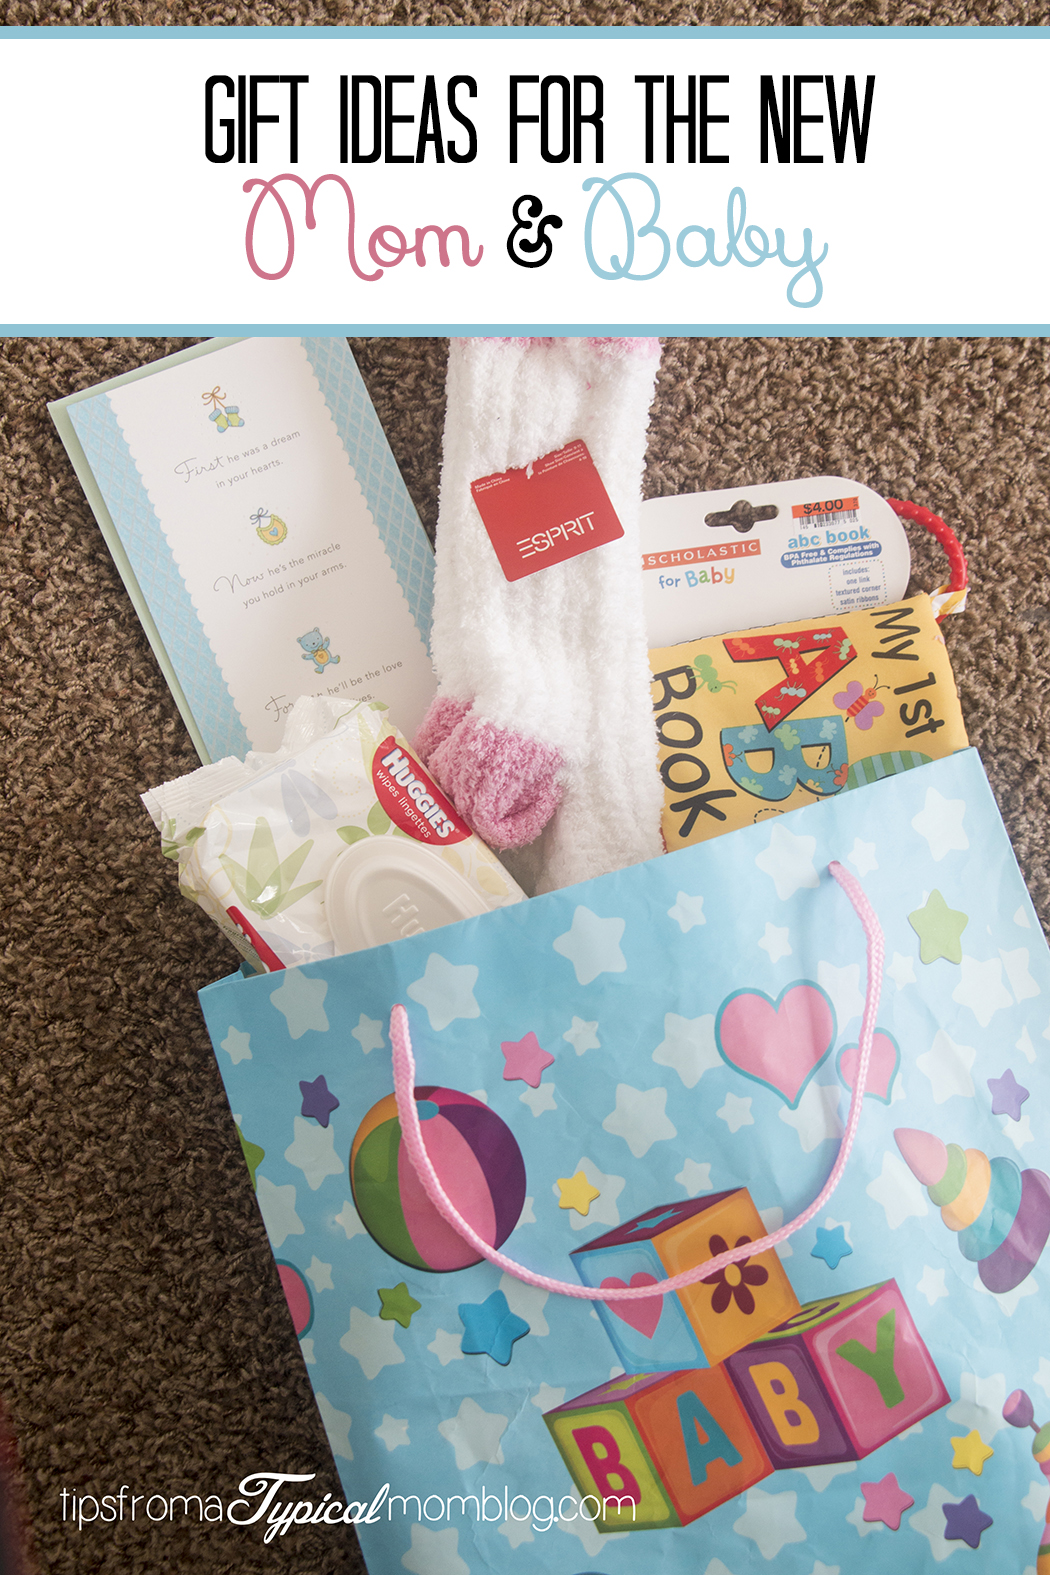 Baby Gifts For New Moms : Gift ideas for the new mom and baby tips from a typical